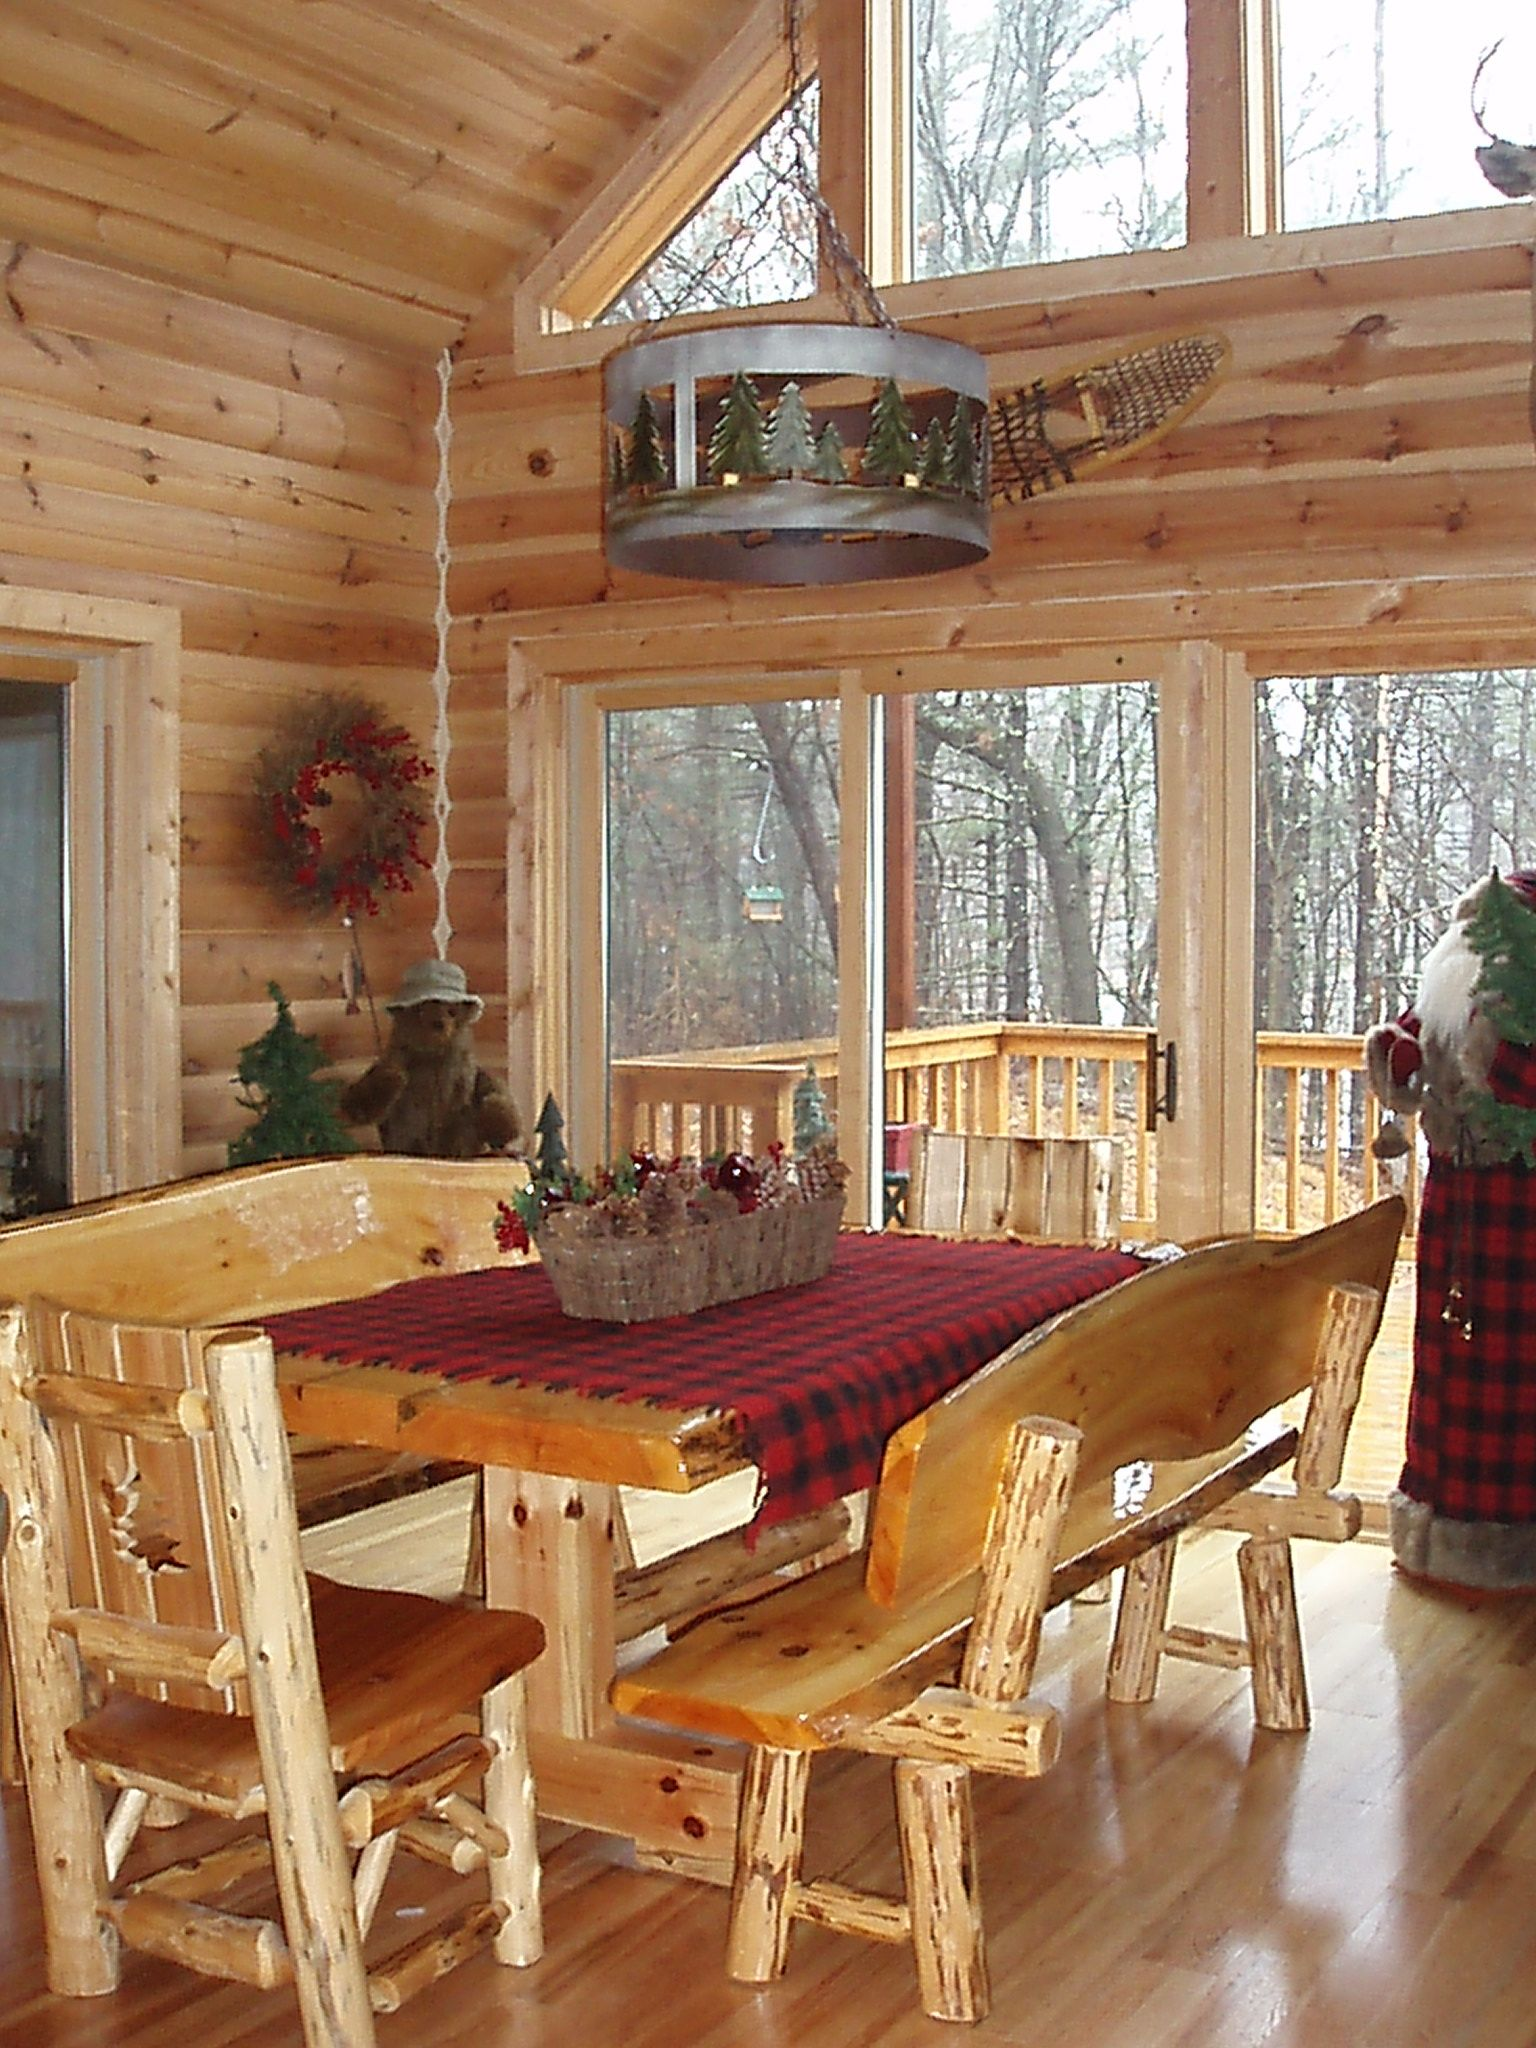 Marvelous photograph of The cabin :) love it there Things I like Pinterest with #986733 color and 1536x2048 pixels